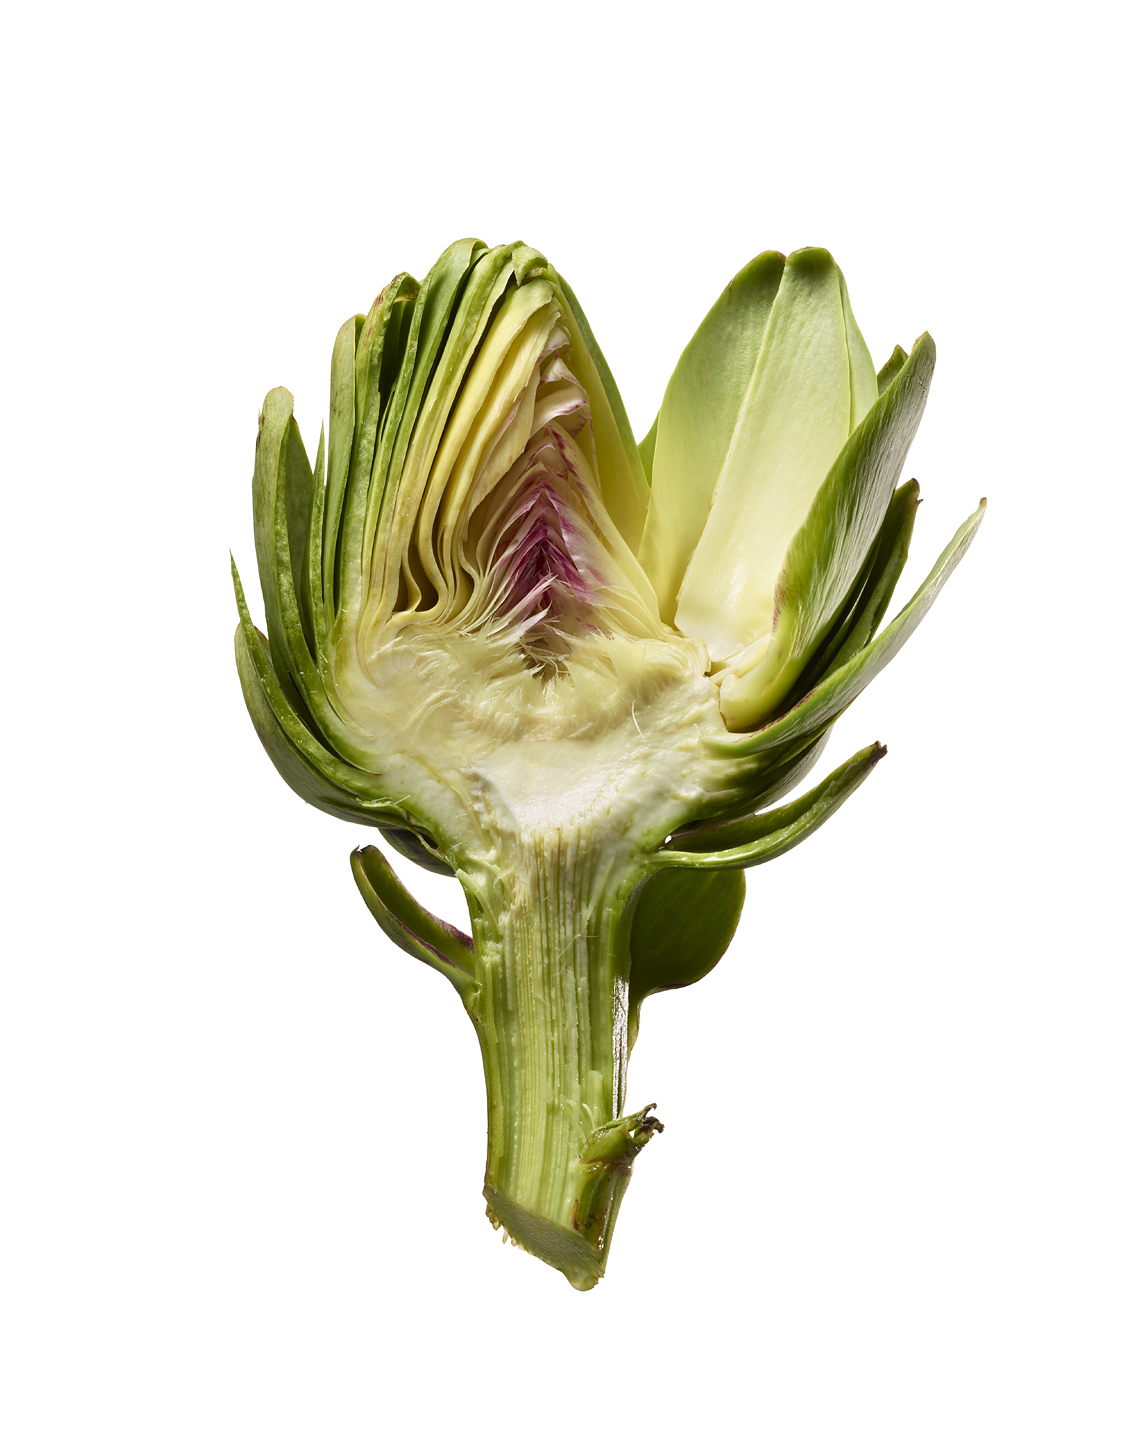 Glasshouse Assignment - Kang Kim - Food Photography - Artichoke